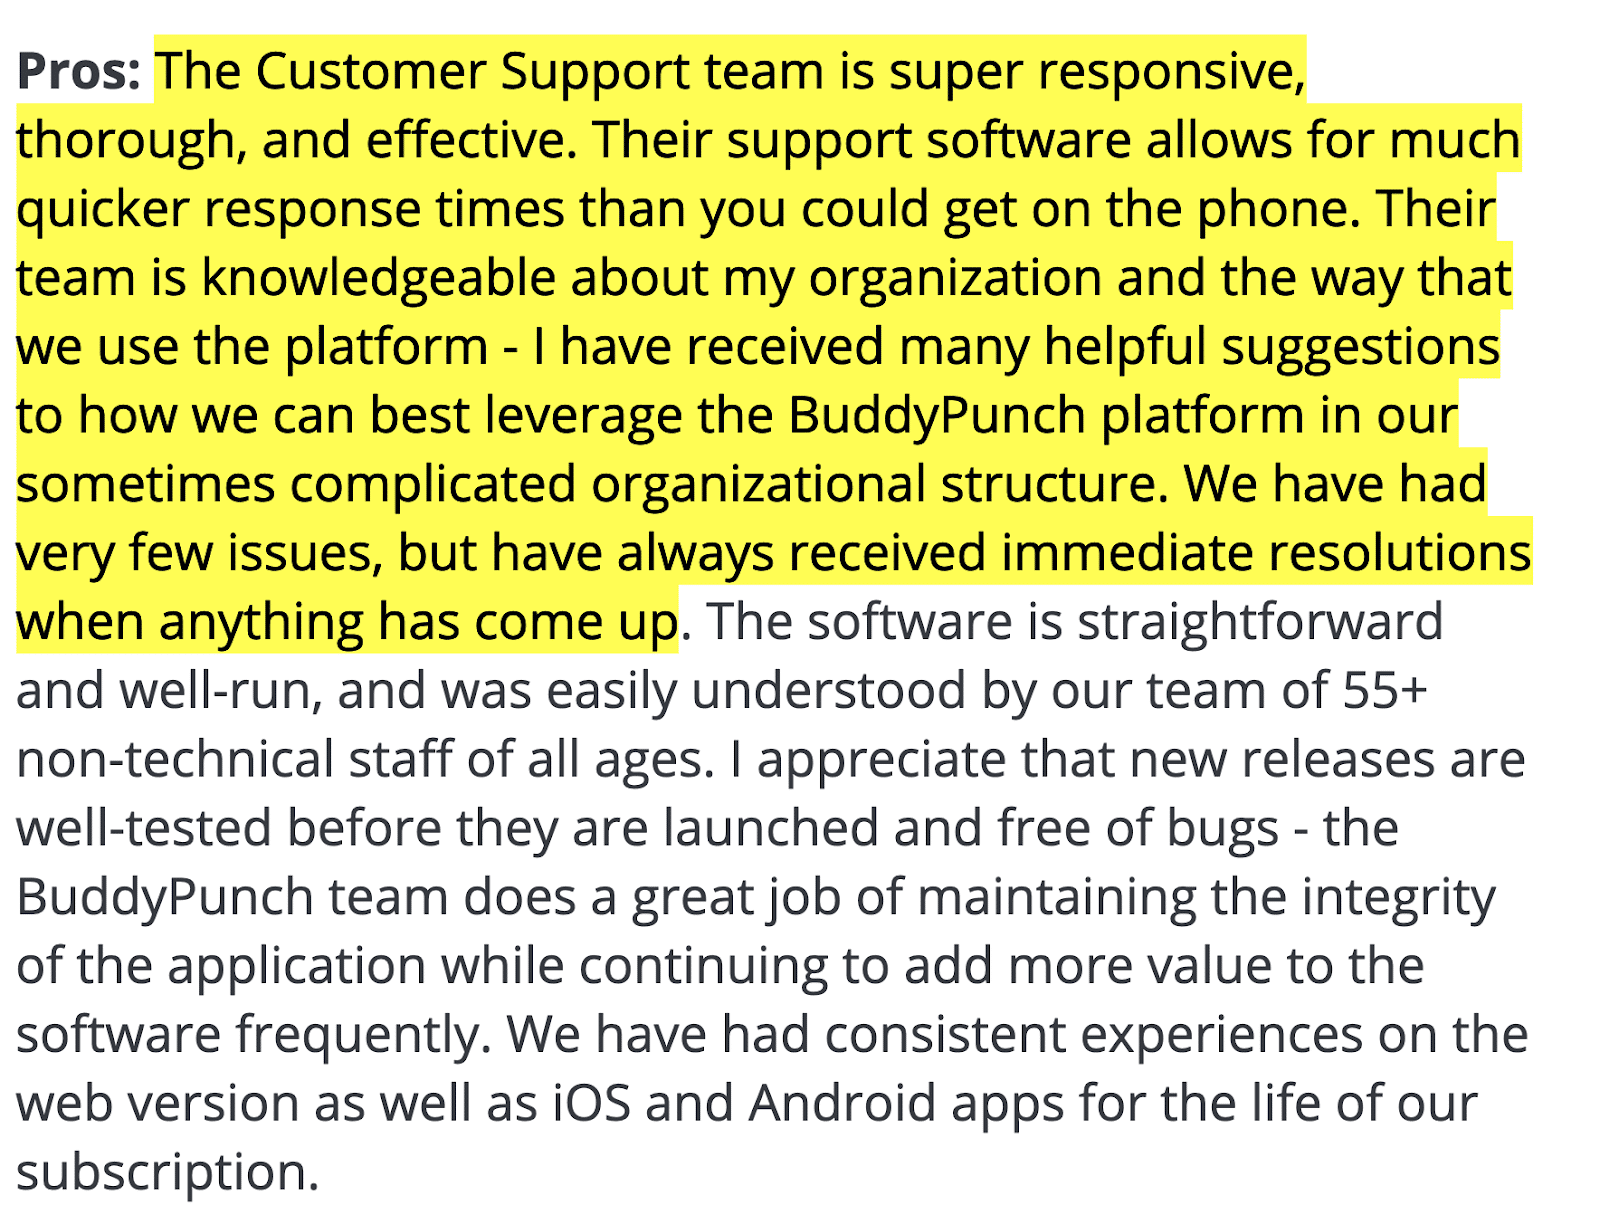 Buddy Punch review: Super responsive customer support, straightforward software, well-run, easily understood, great job.